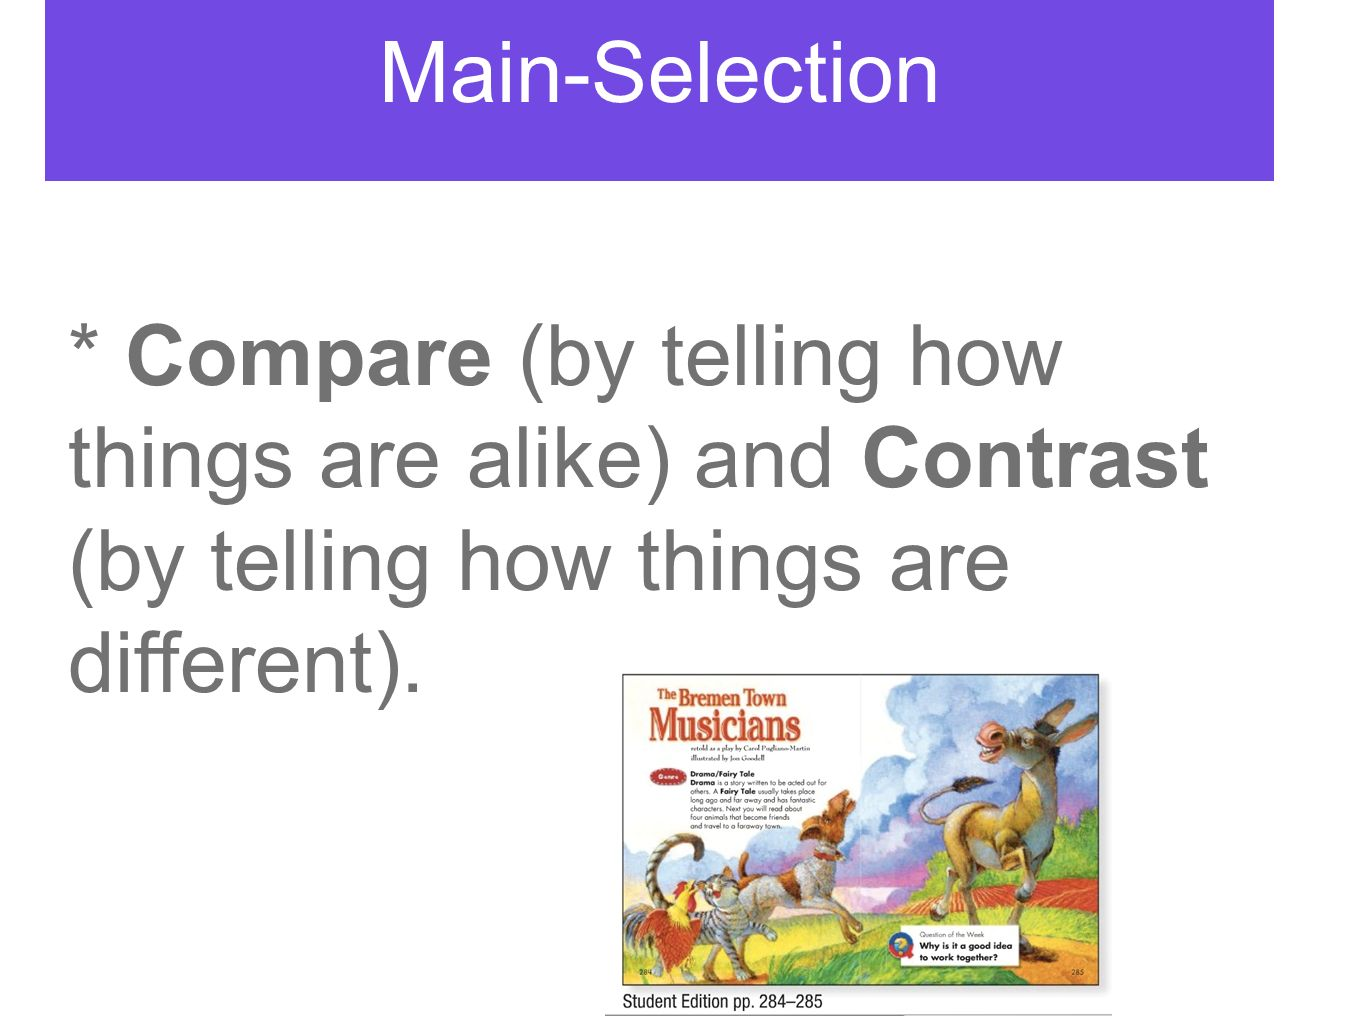 compare and contrast how the main However, for a comparison and contrast, the thesis could be although both use the same story line and offer similar game play, the newest version of the game differs from the older game in terms of characters, technical specifications and price, indicating the essay will cover both similarities and differences.